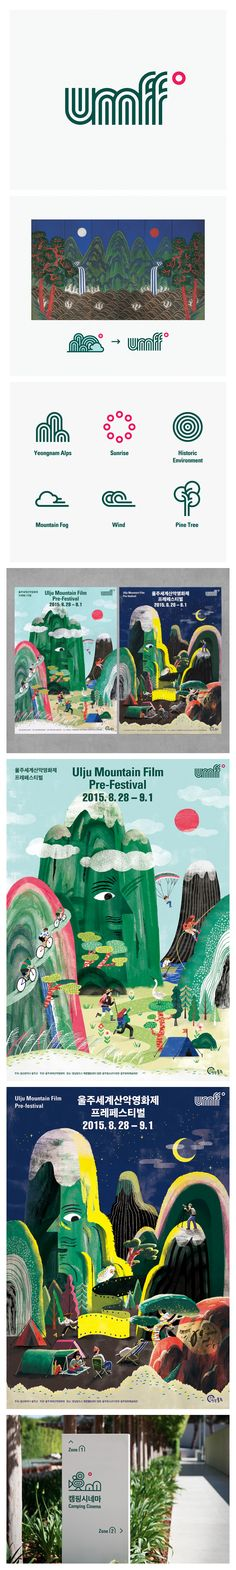 Korea movie Festival 2015